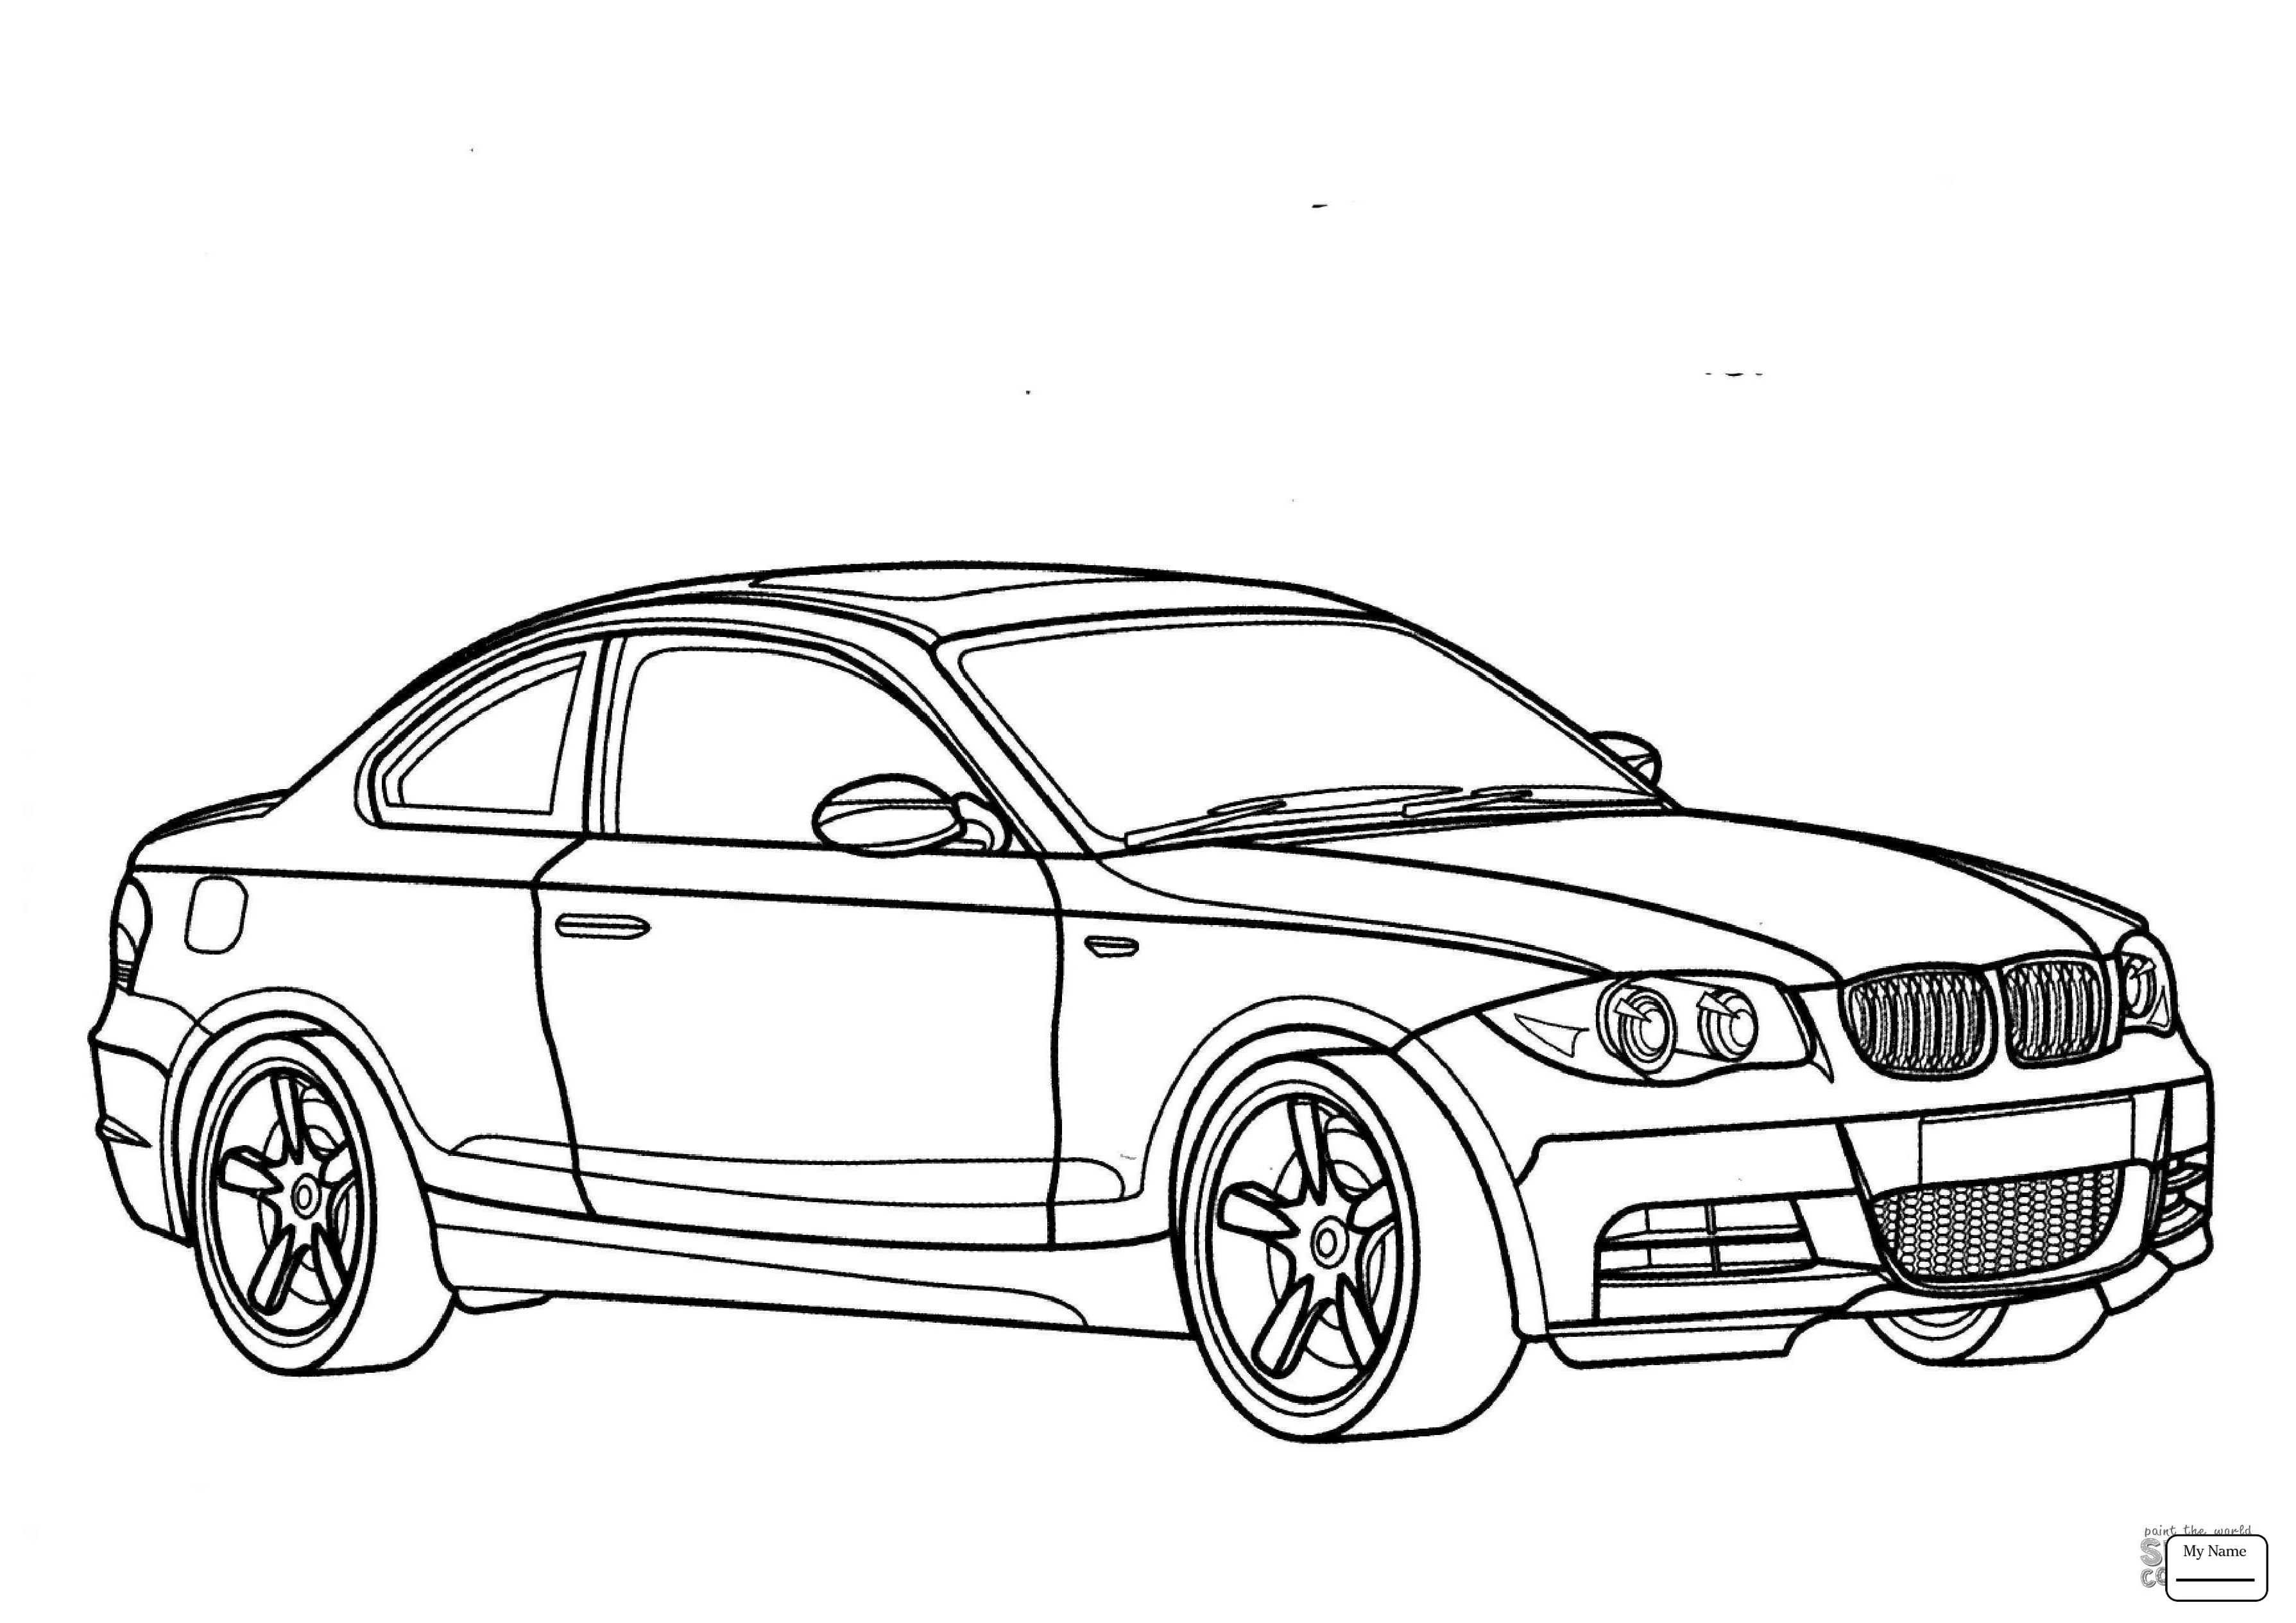 bmw m3 drawing at getdrawings free for personal use bmw m3 Hot Wheels BMW M3 GTR 3578x2530 coloring pages transport bmw e92 m3 gtr bmw